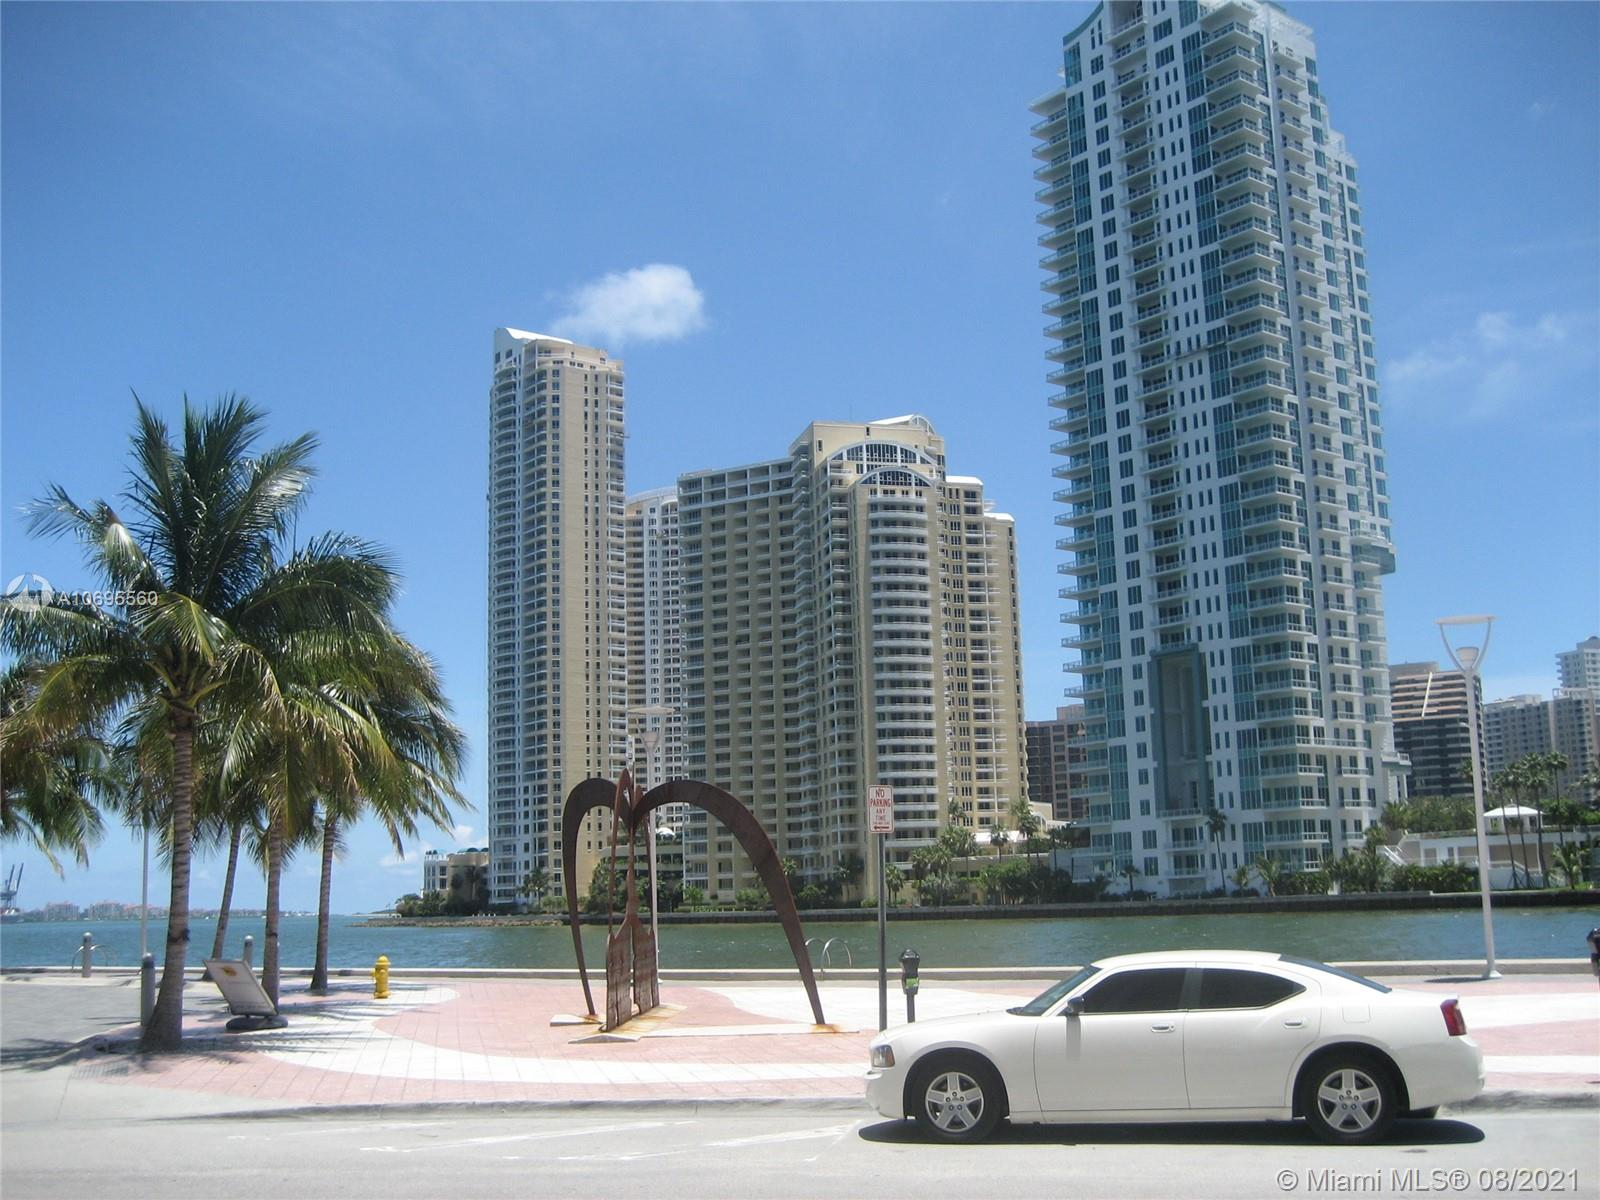 Met 1 is a Beautiful downtown Condo on the River with great amenities Gym Sauna Yoga Valet room Heated Pool concierge on site Management Restaurant Walk to Bay side Miami Heat Right off 95 in the heart of all Downtown This unit is a 1 bed 1 and 1/2 bath, large tiled balcony, 1 parking space overlooking the pool and city. Next to Whole Foods Theater and River walk